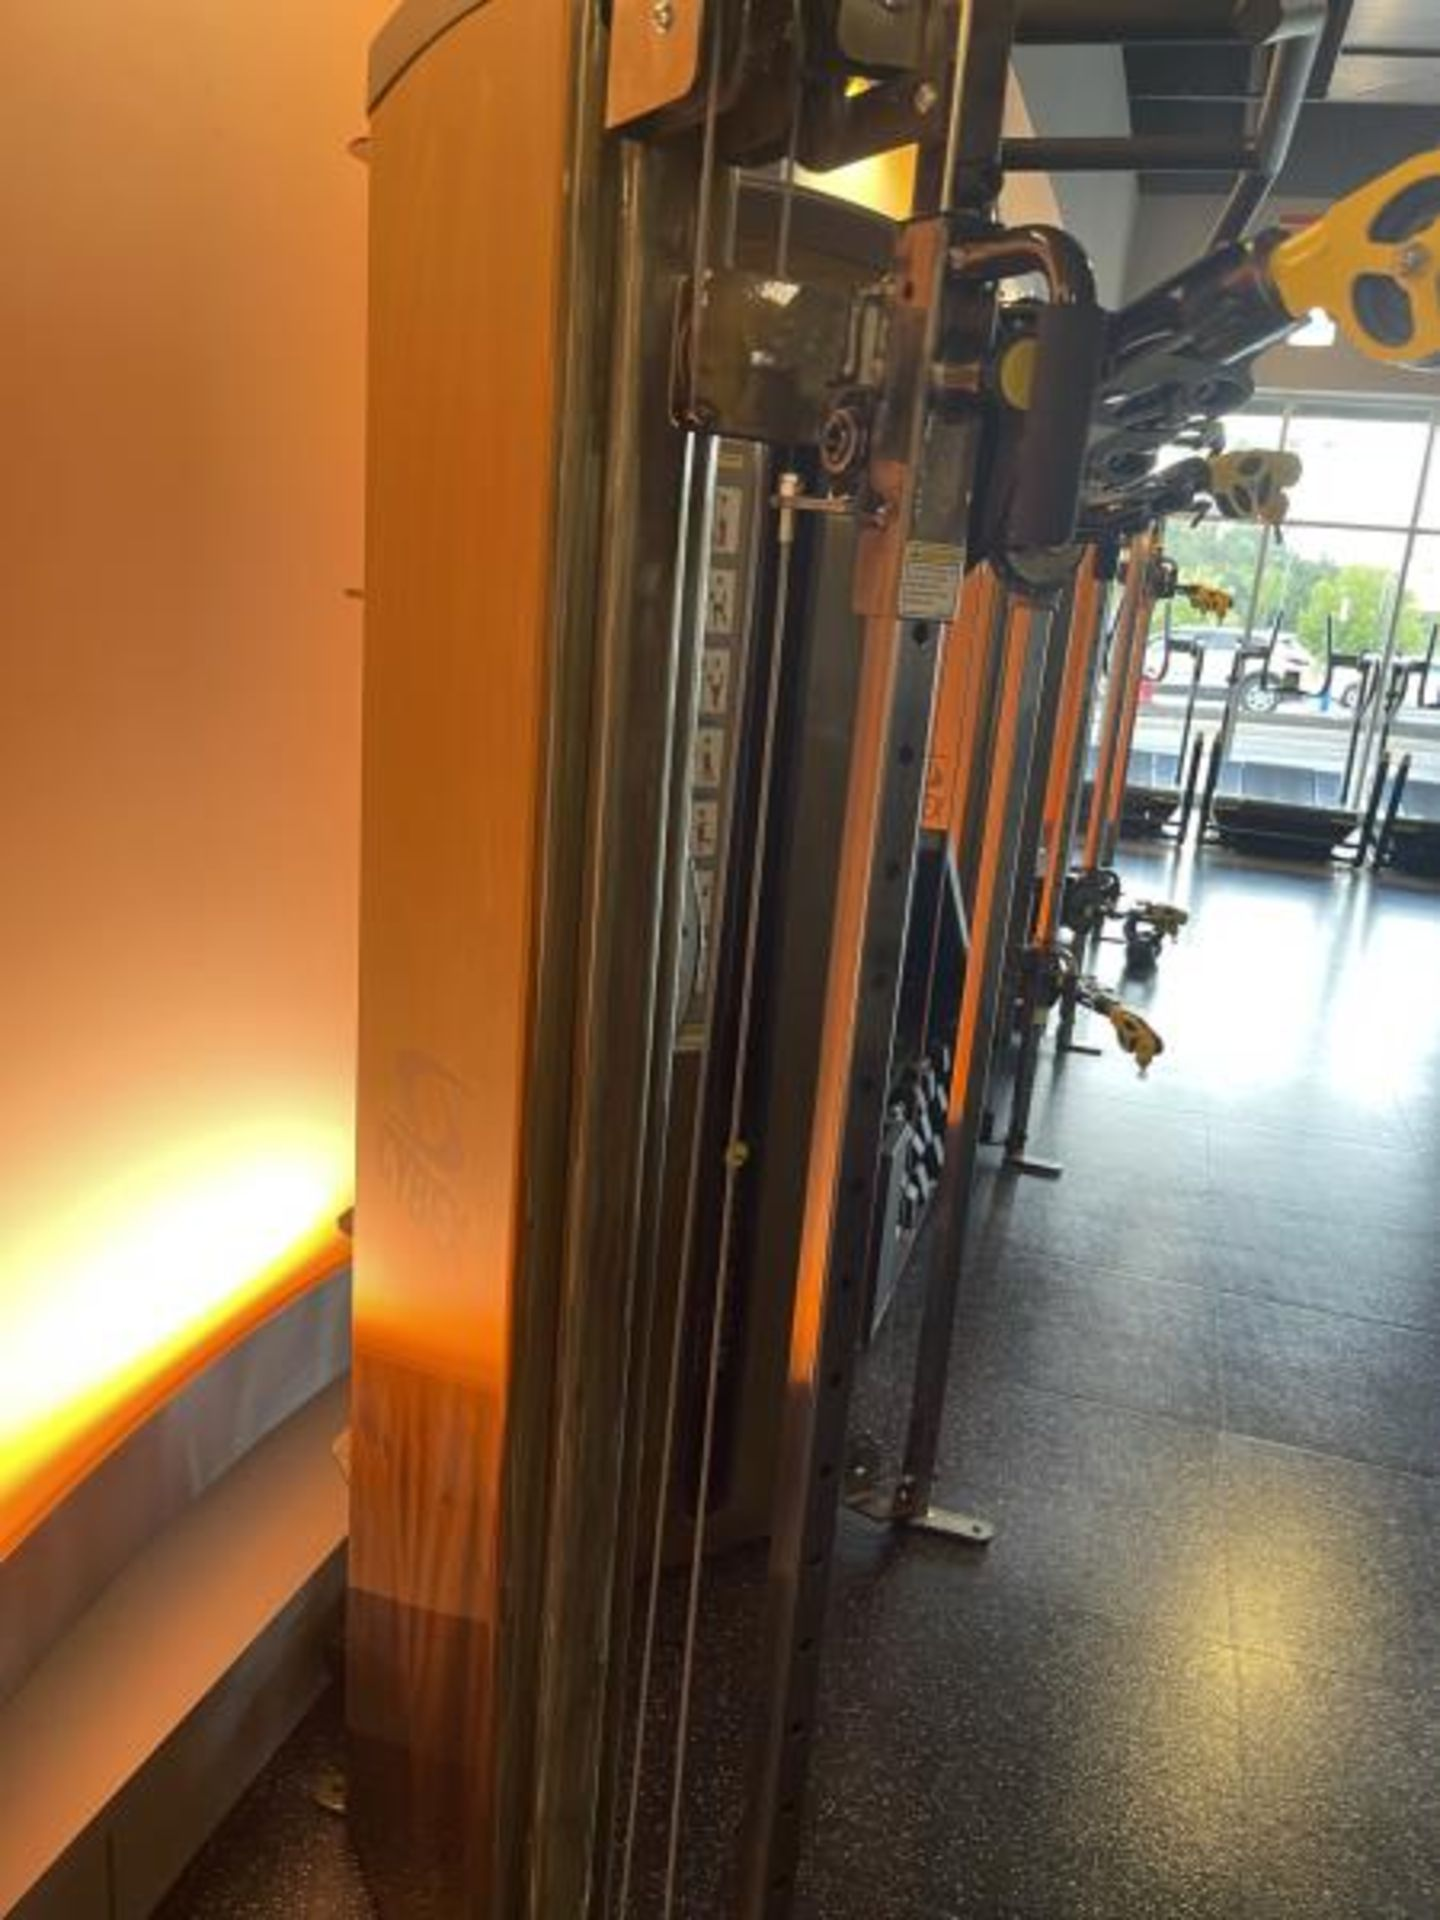 Cybex Bravo All-In-One Functional Trainer M: 8830 - Image 3 of 5